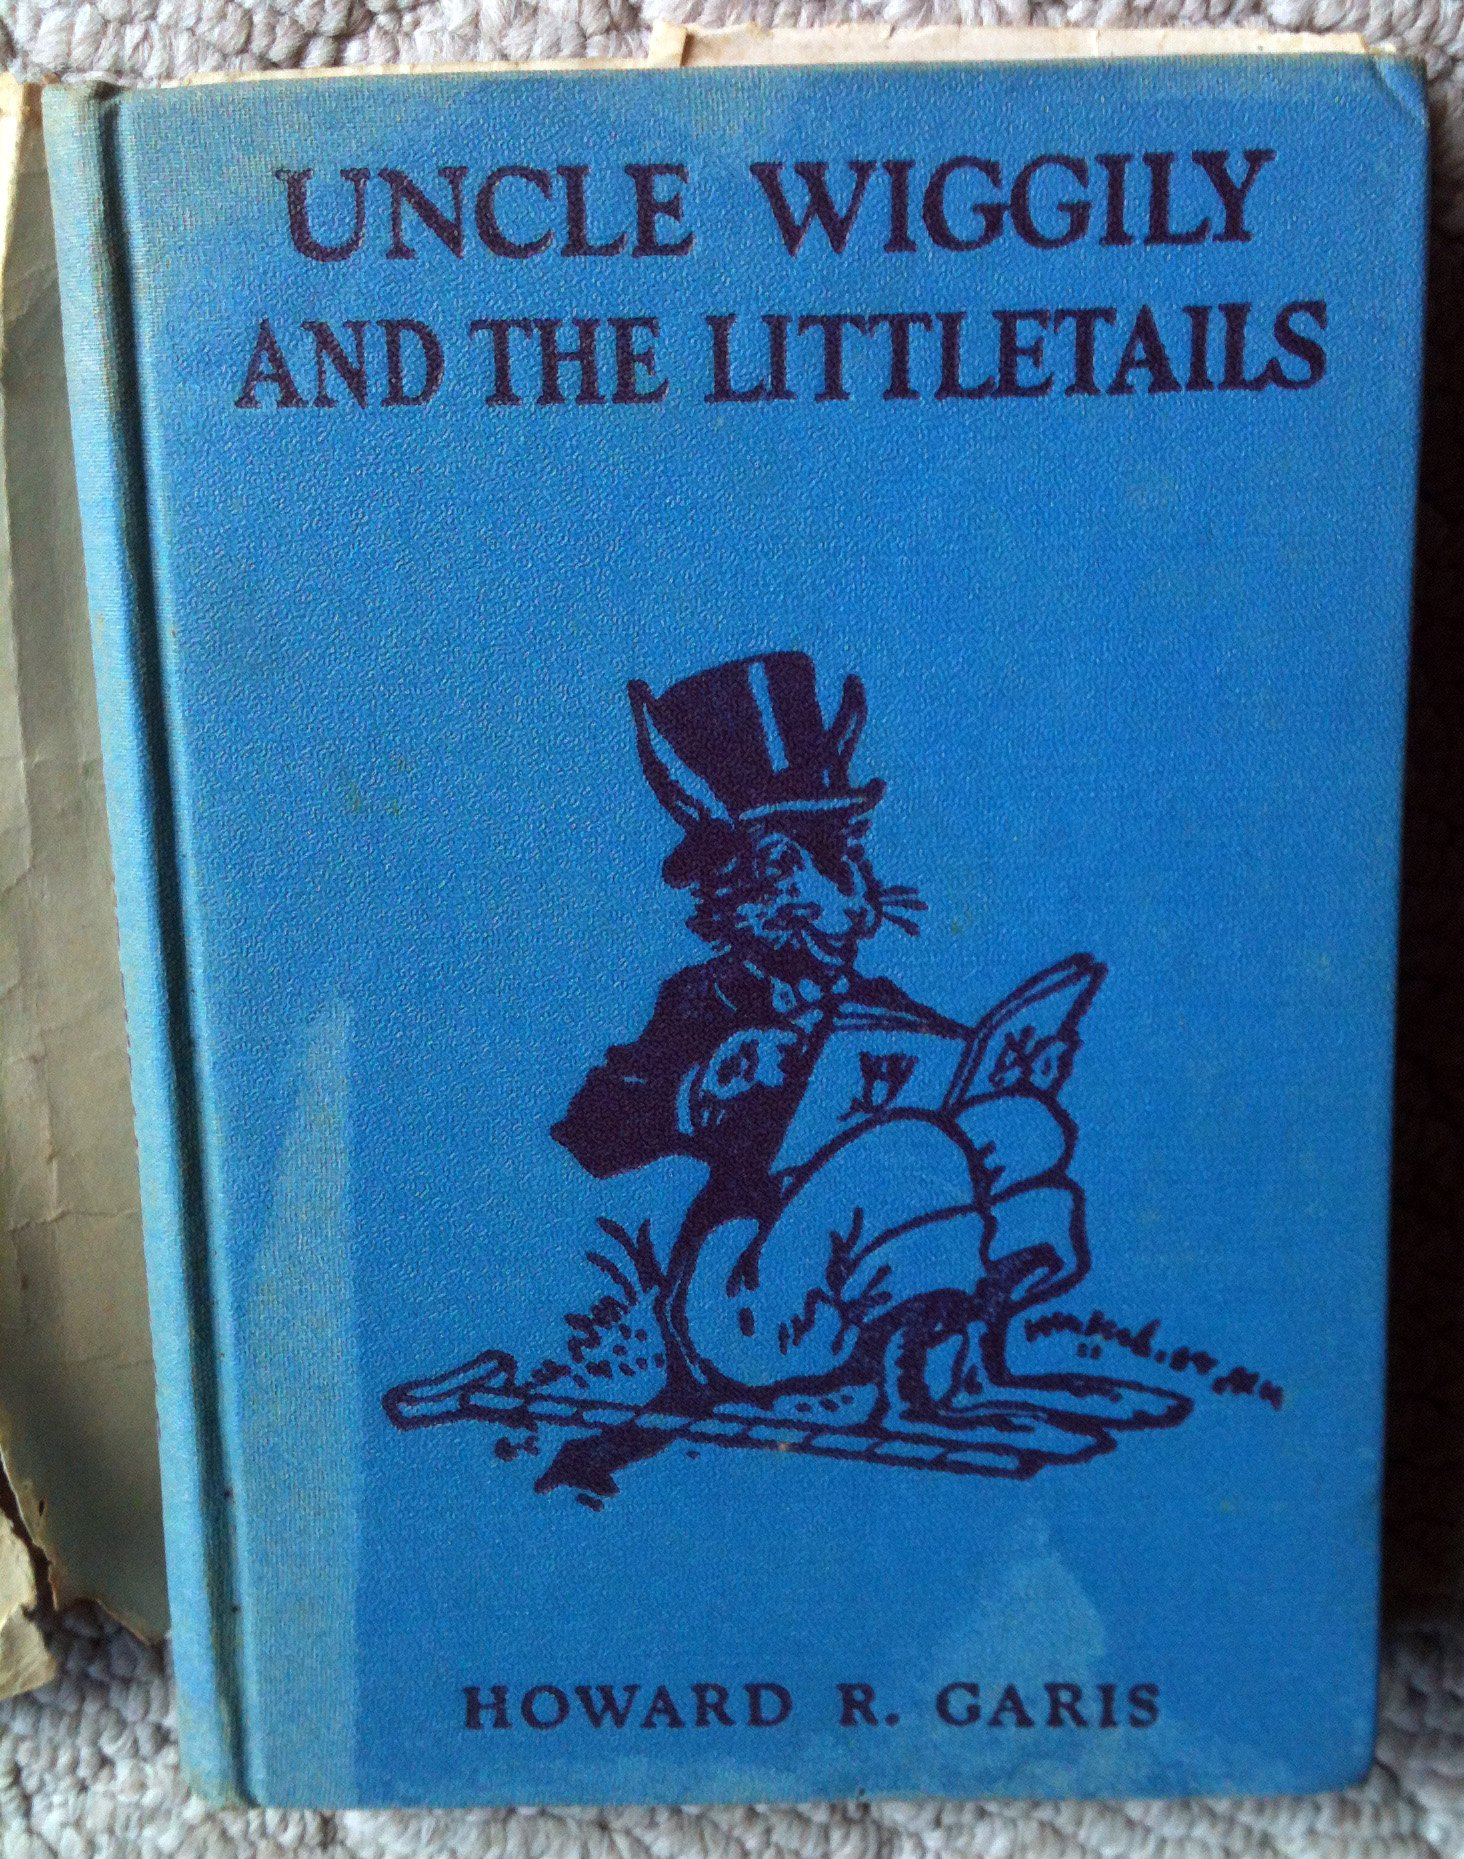 Uncle Wiggily and the Little Tails: Howard R. Garis: Amazon.com: Books